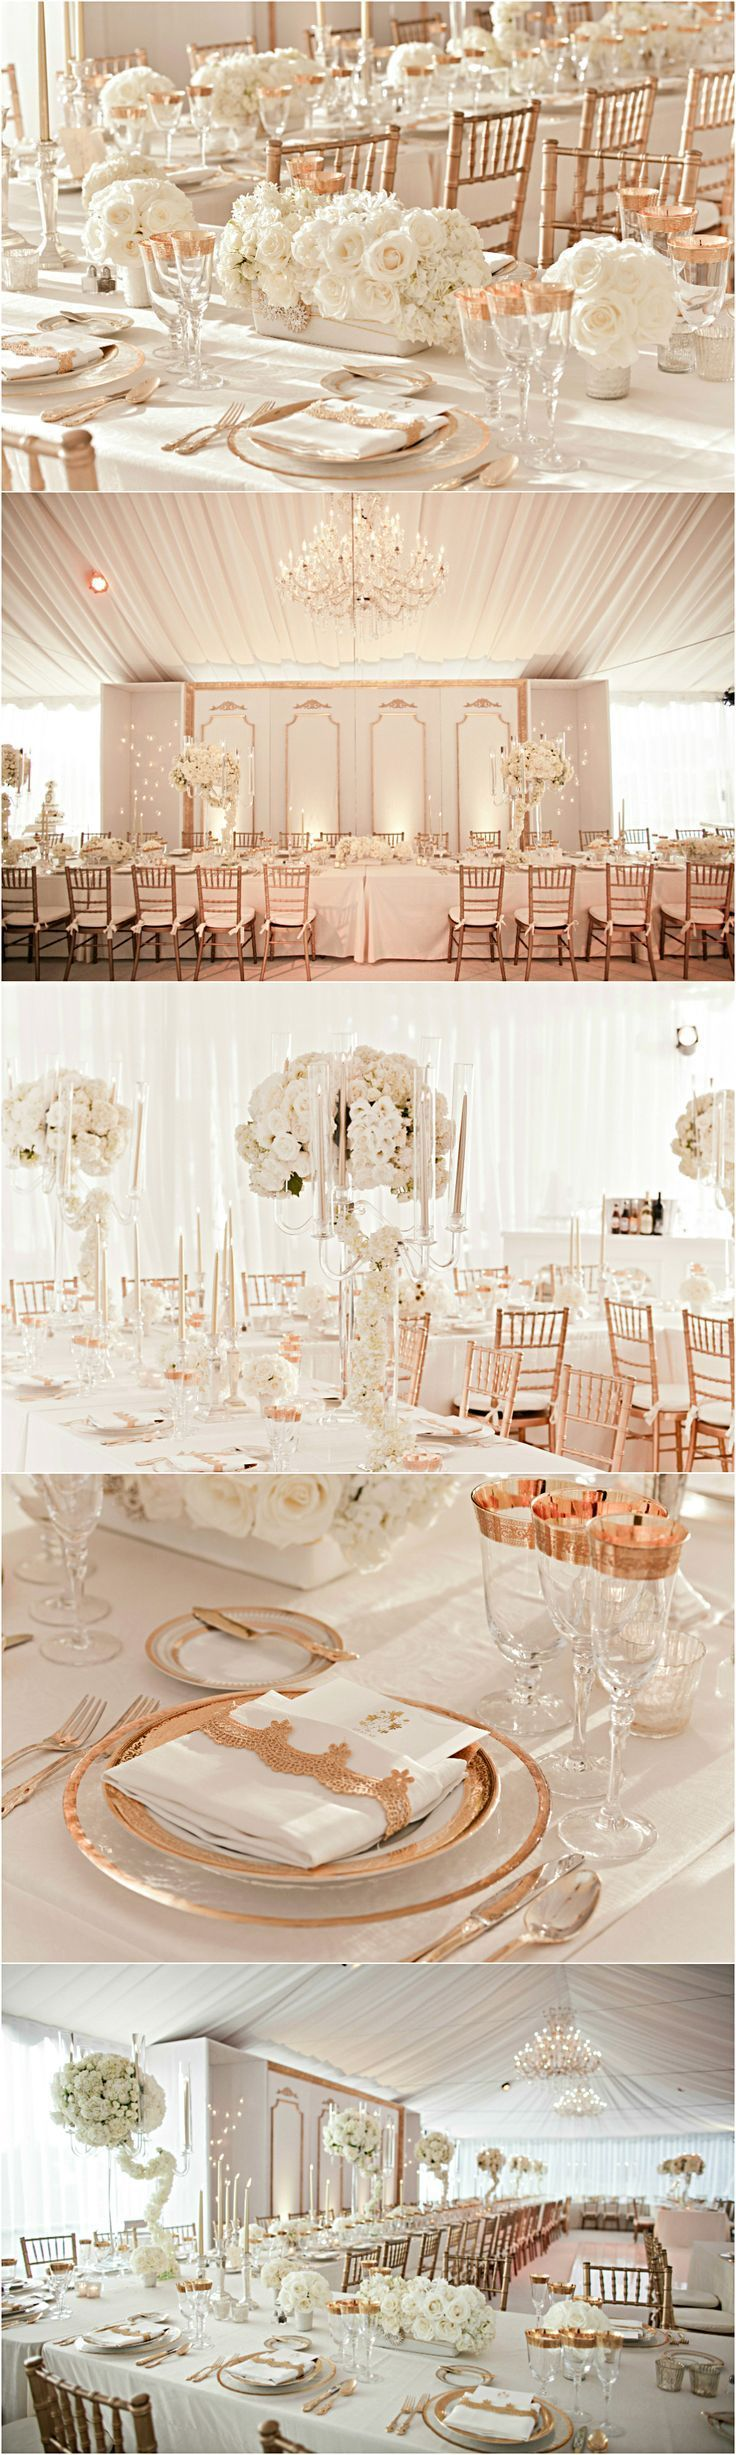 This was taken from an Indian Weddings album. I love the idea of ...